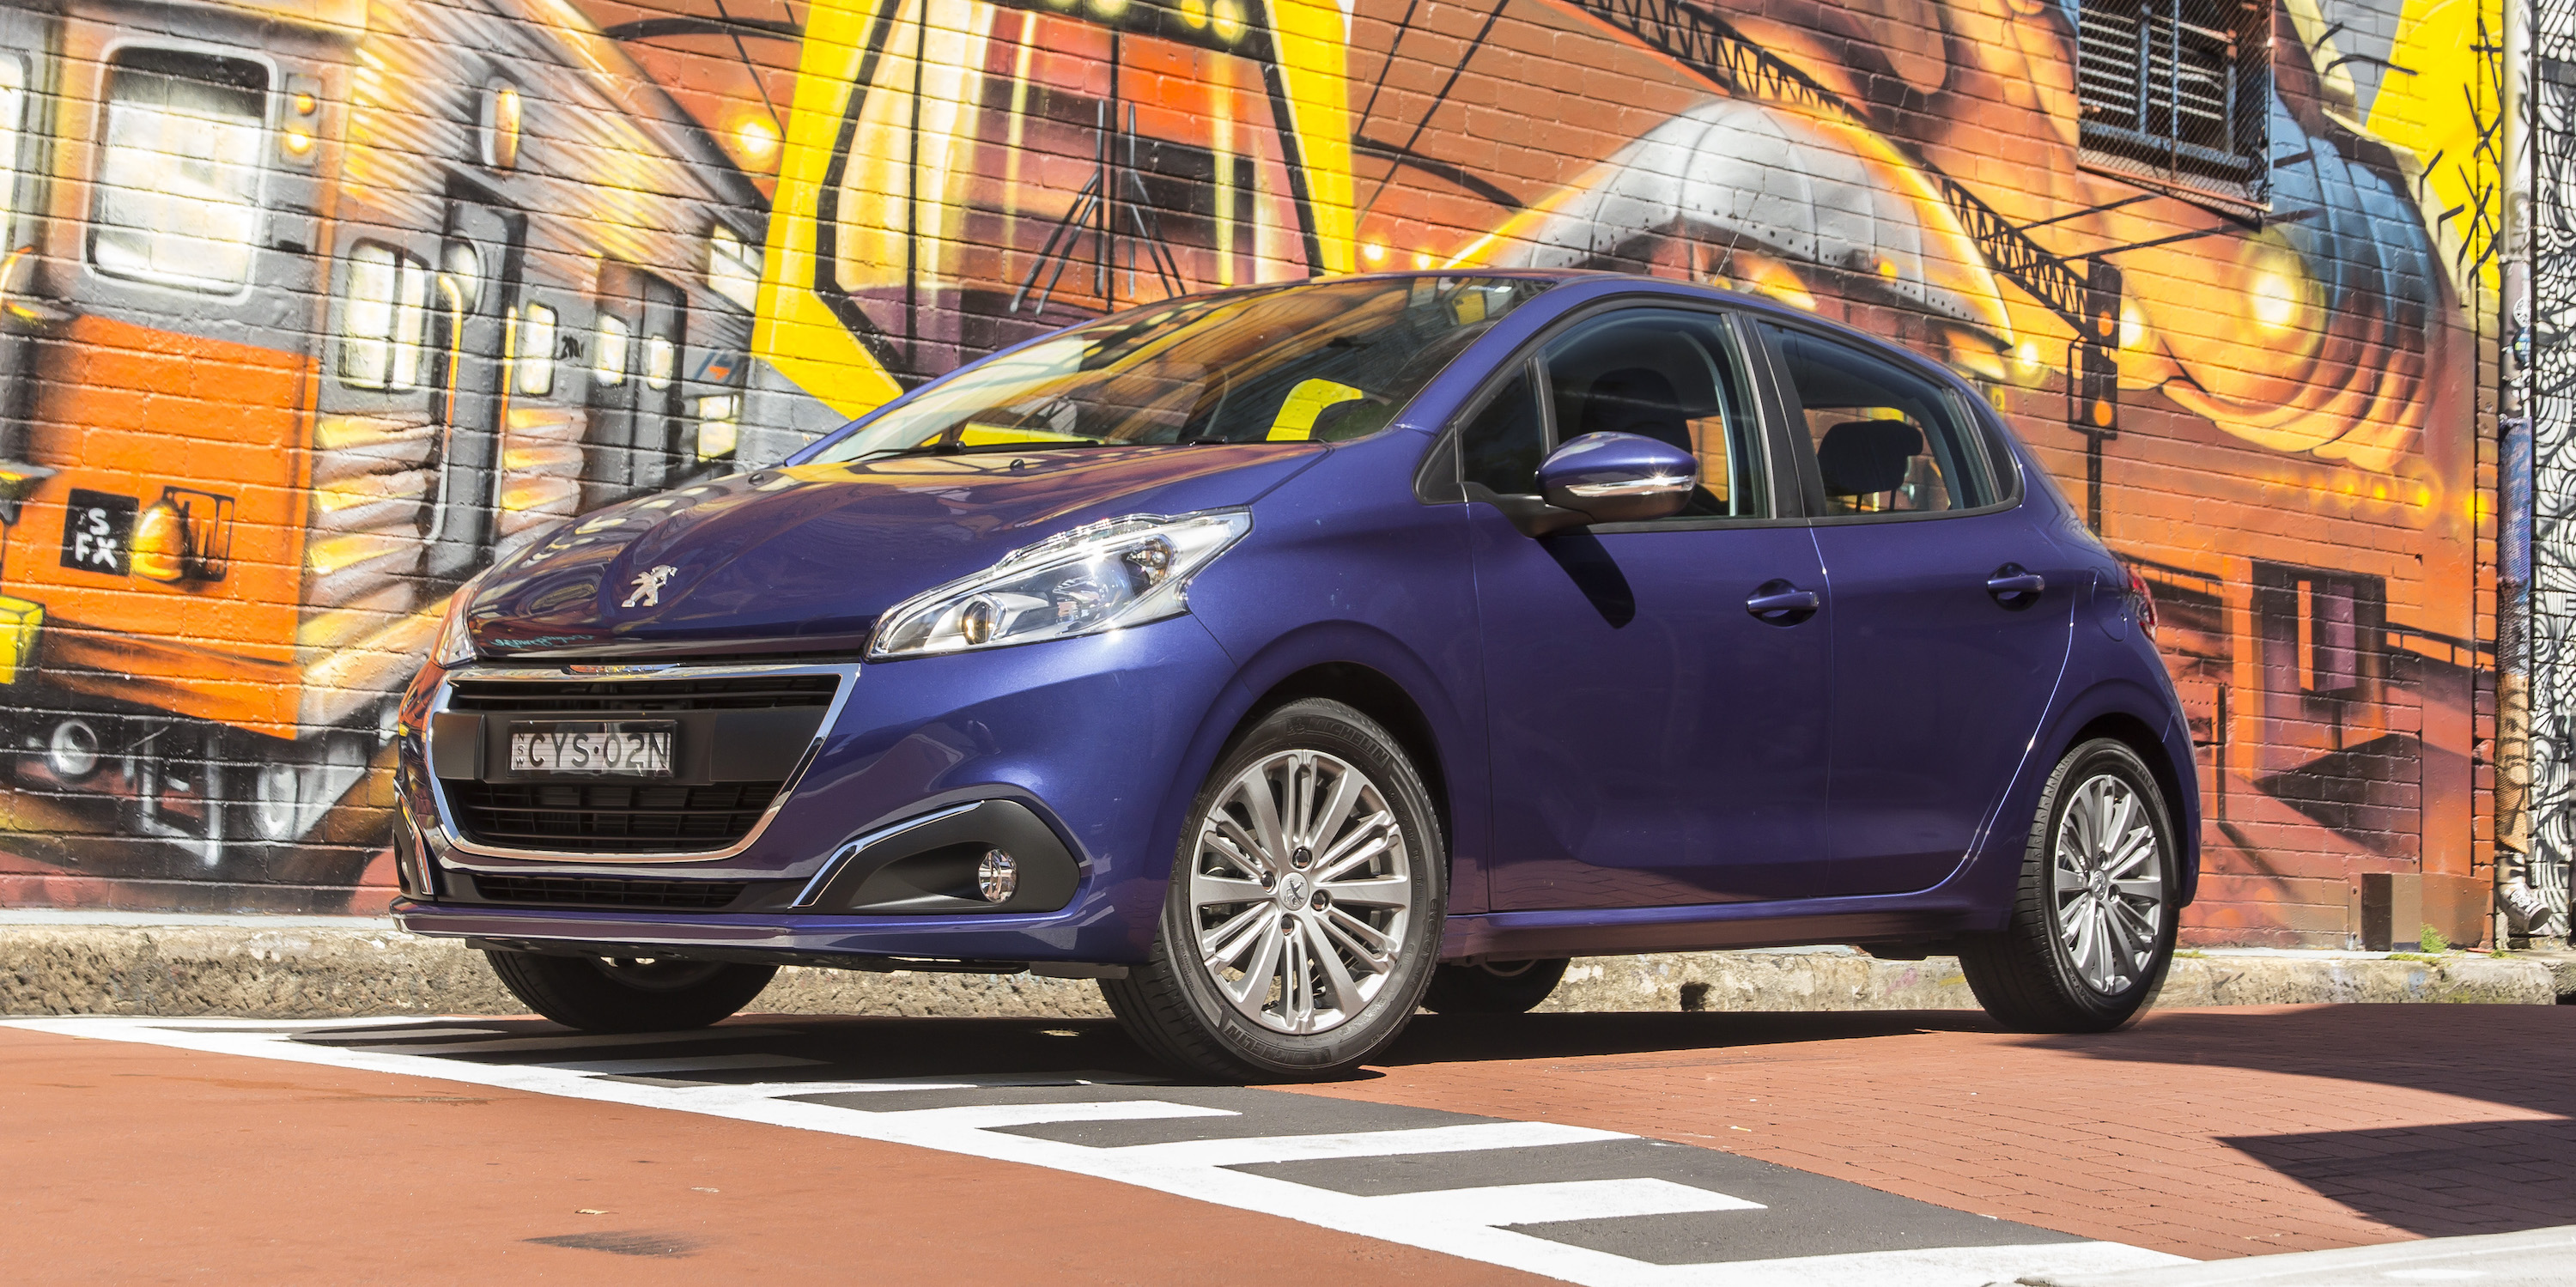 2016 Peugeot 208 Active Preview (Photo 9 of 16)